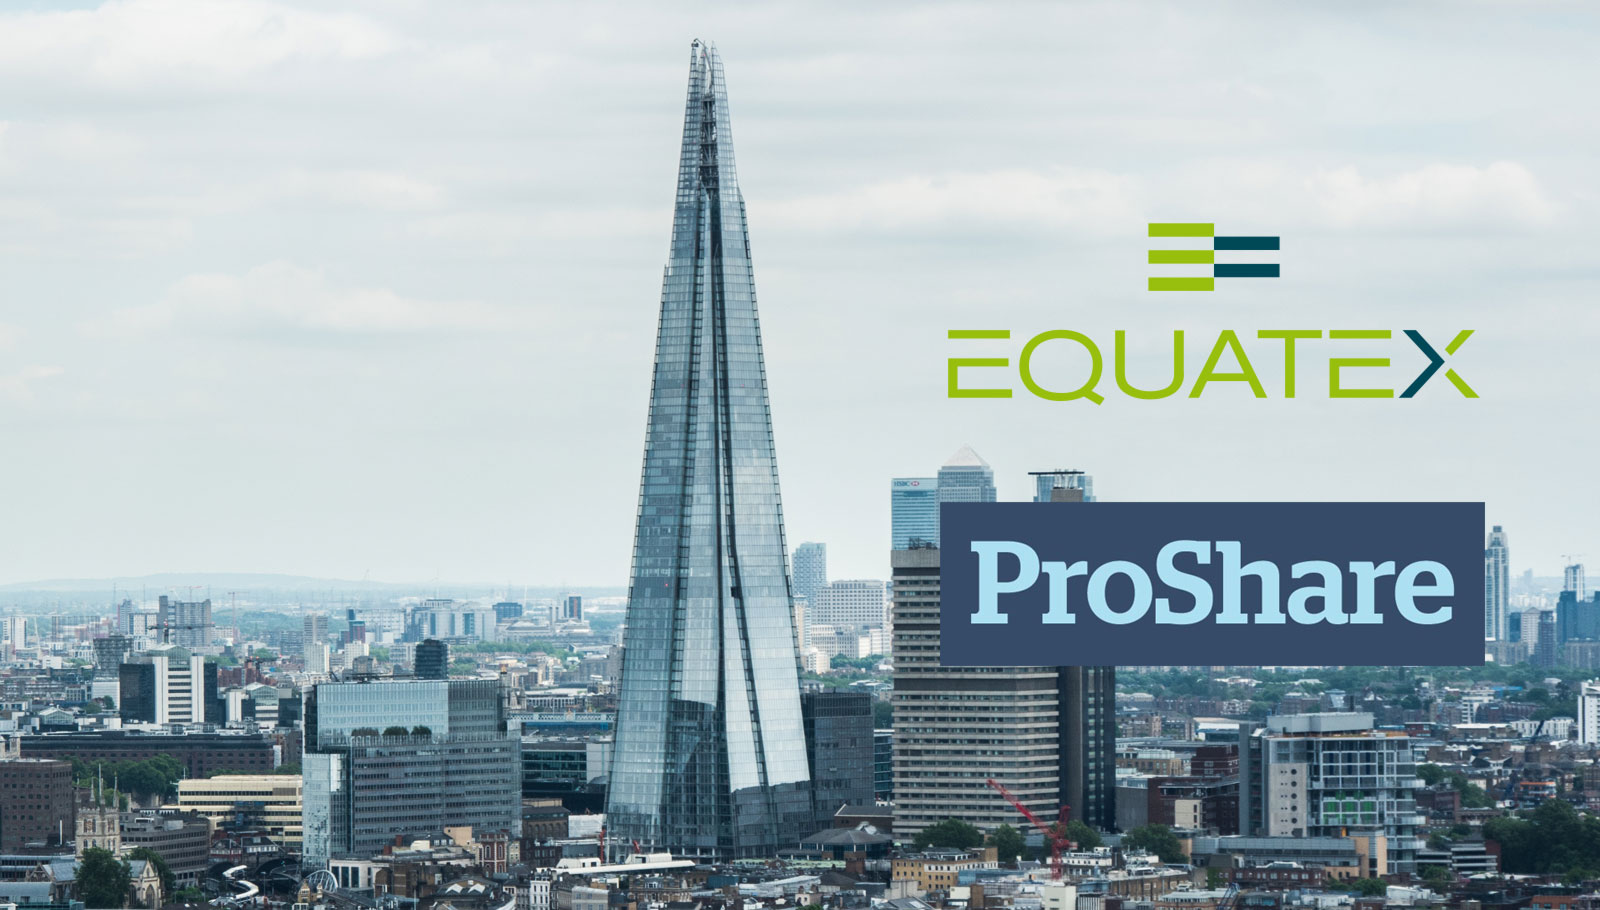 Equatex and ProShare logos on London backdrop